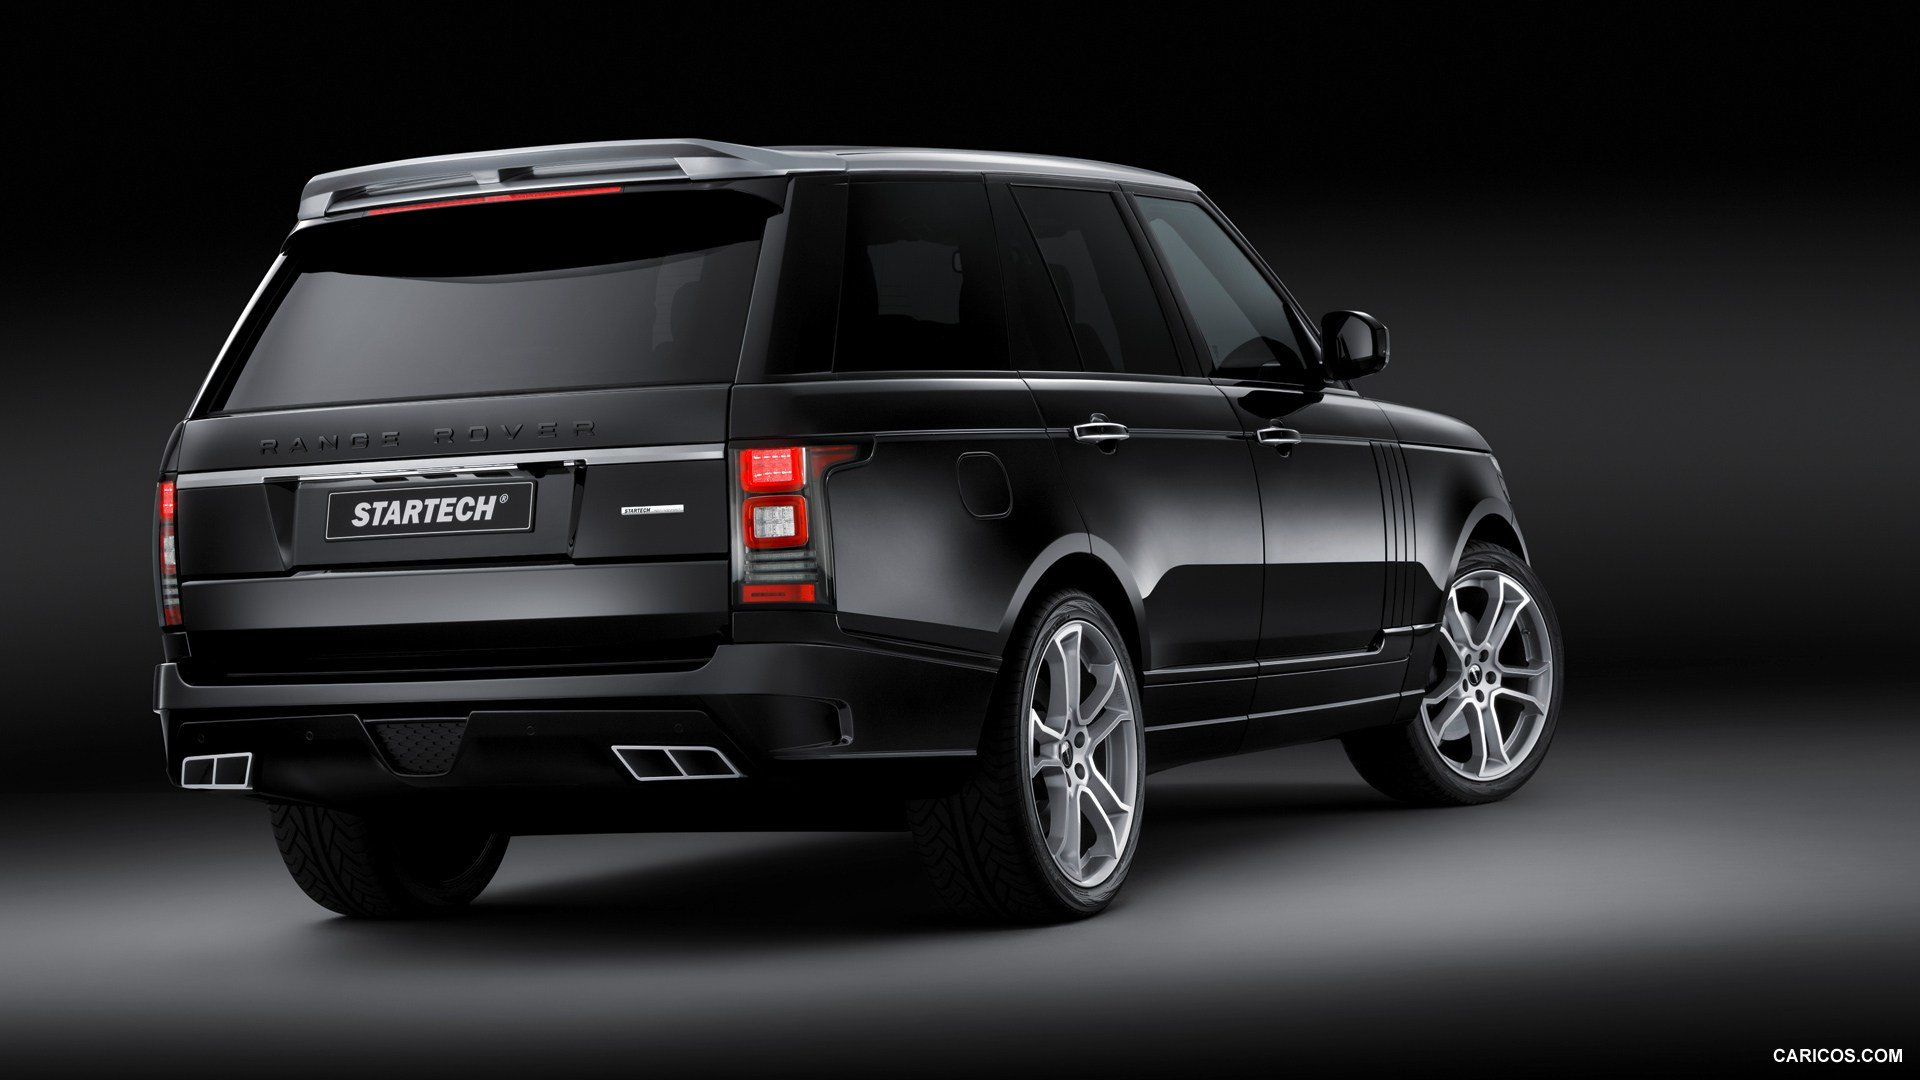 New Startech Range Rover 2013 21 Image On This Month